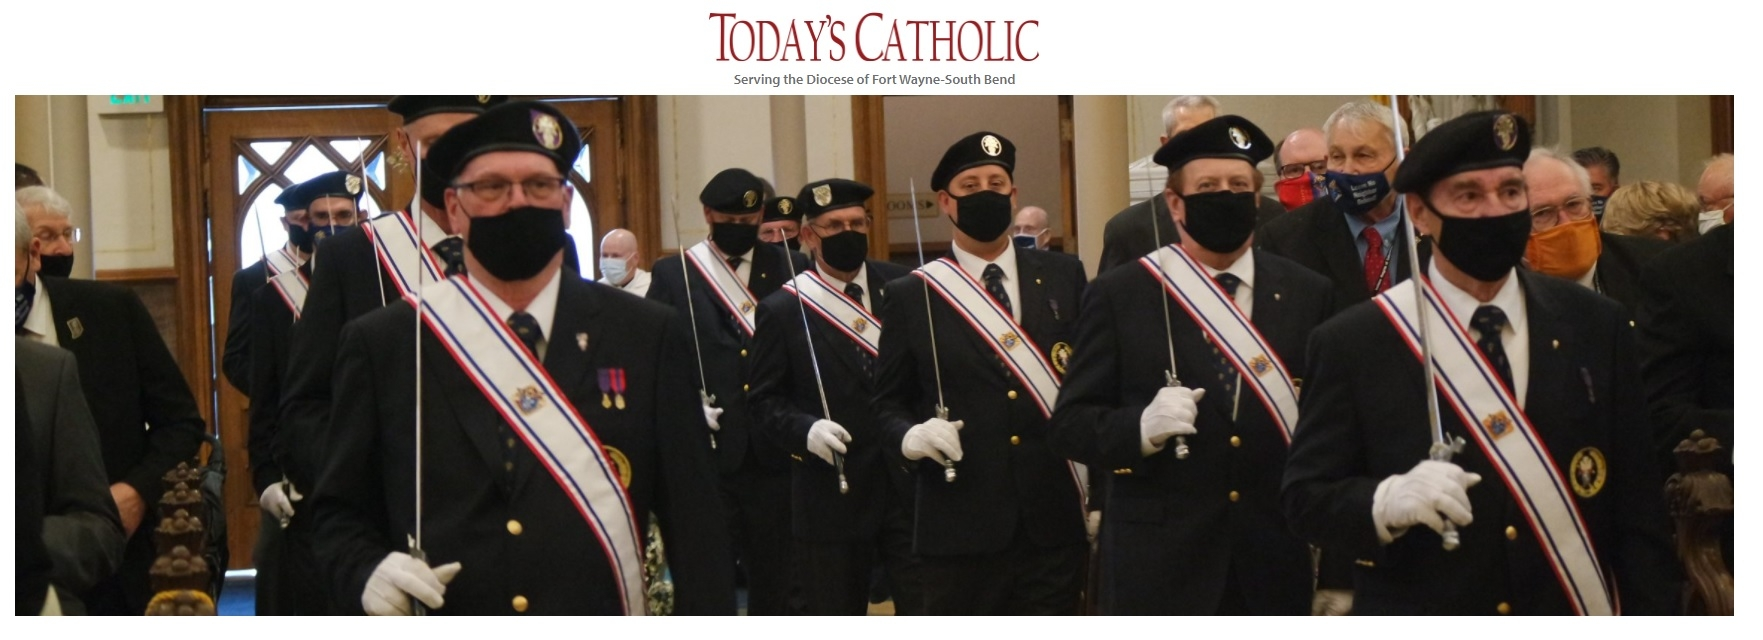 TODAY'S CATHOLIC  reporter Nick Hankoff article on the 120th Annual Meeting of the Indiana State Council of the Knights of